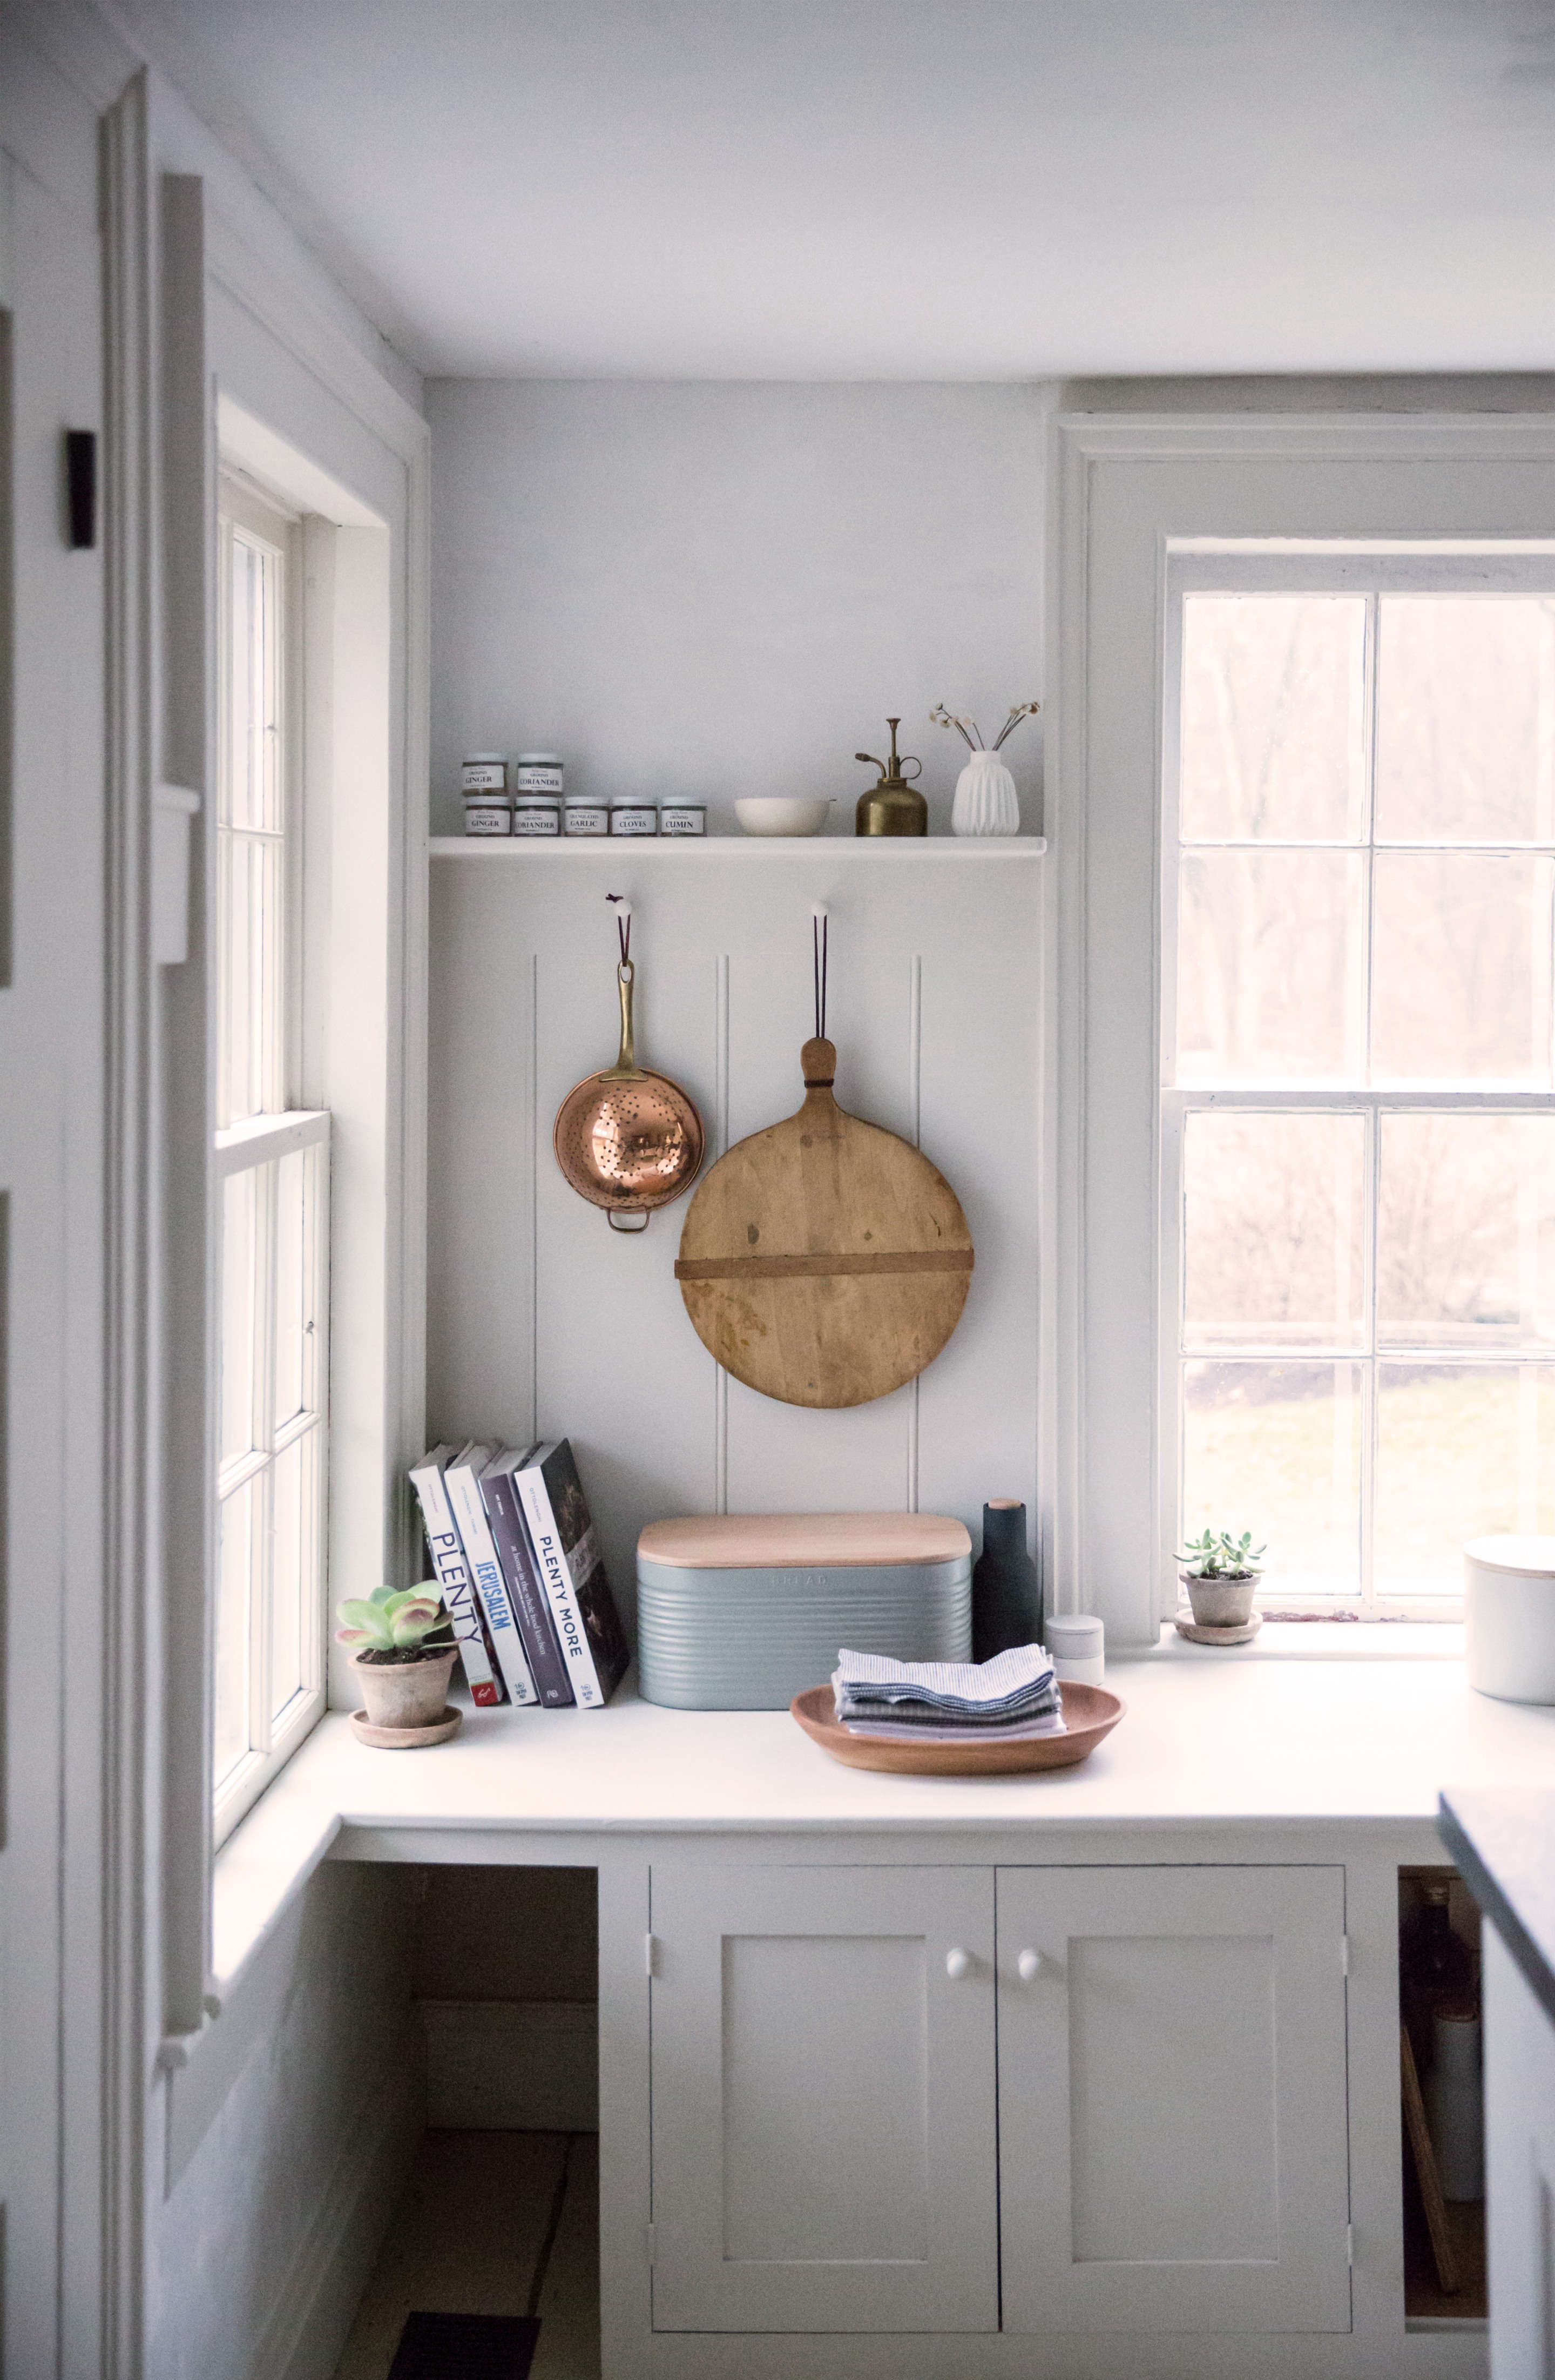 Kitchen Window Shutters Interior Browse Diy Remodeling Archives On Remodelista